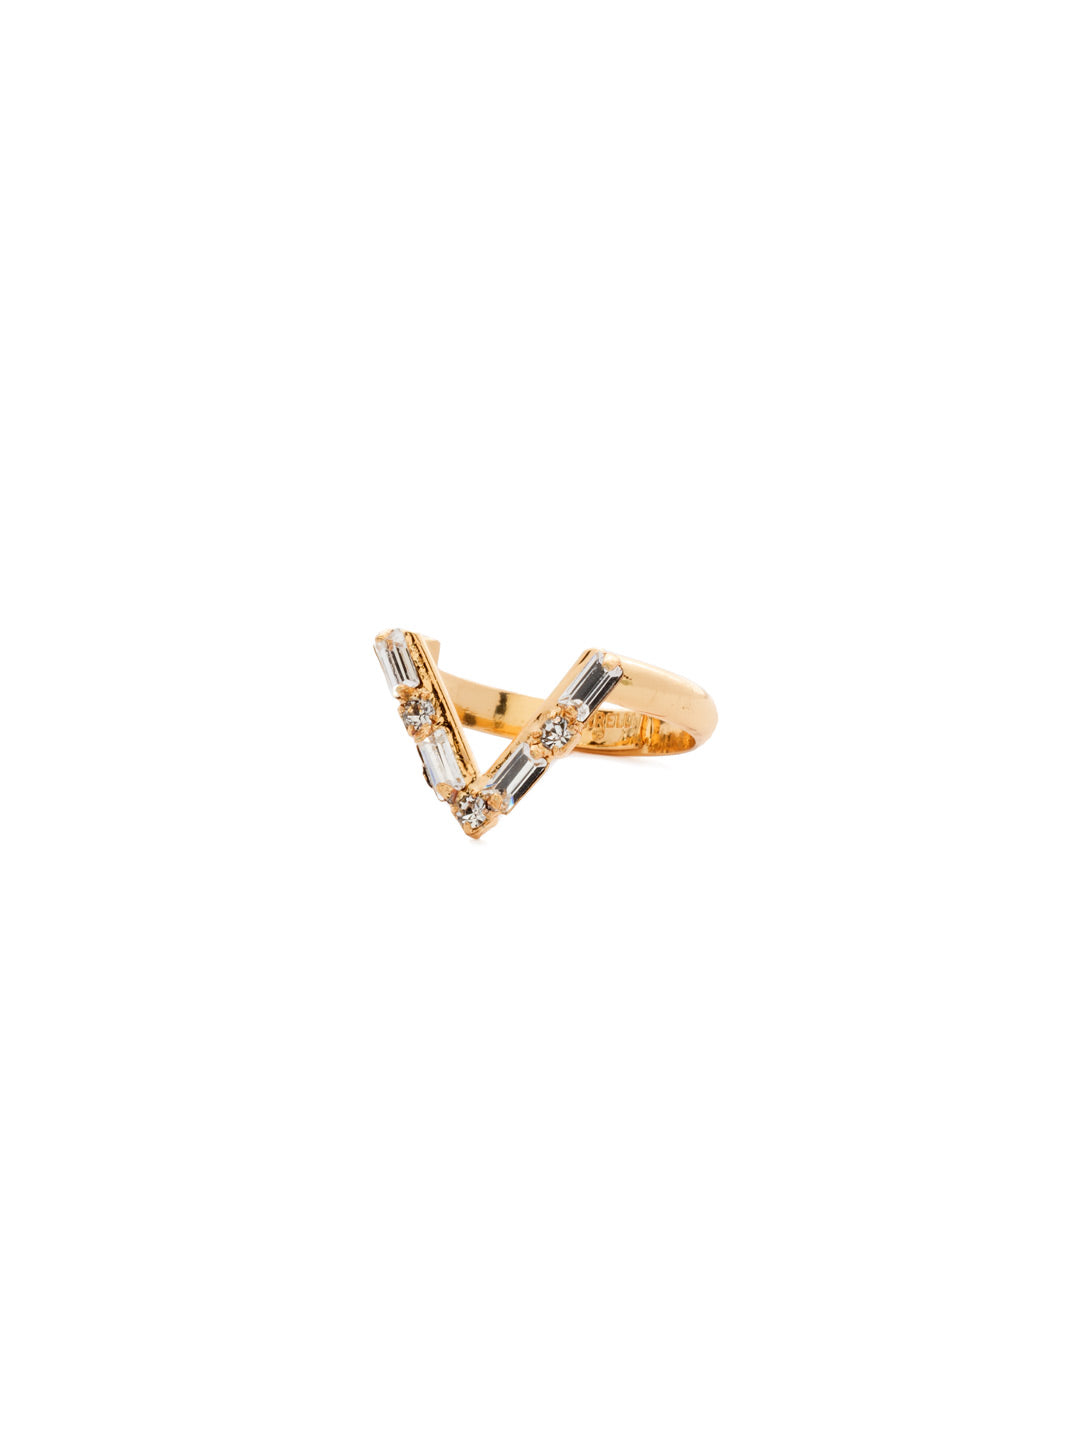 Chevron Band Ring - RDN40BGCRY